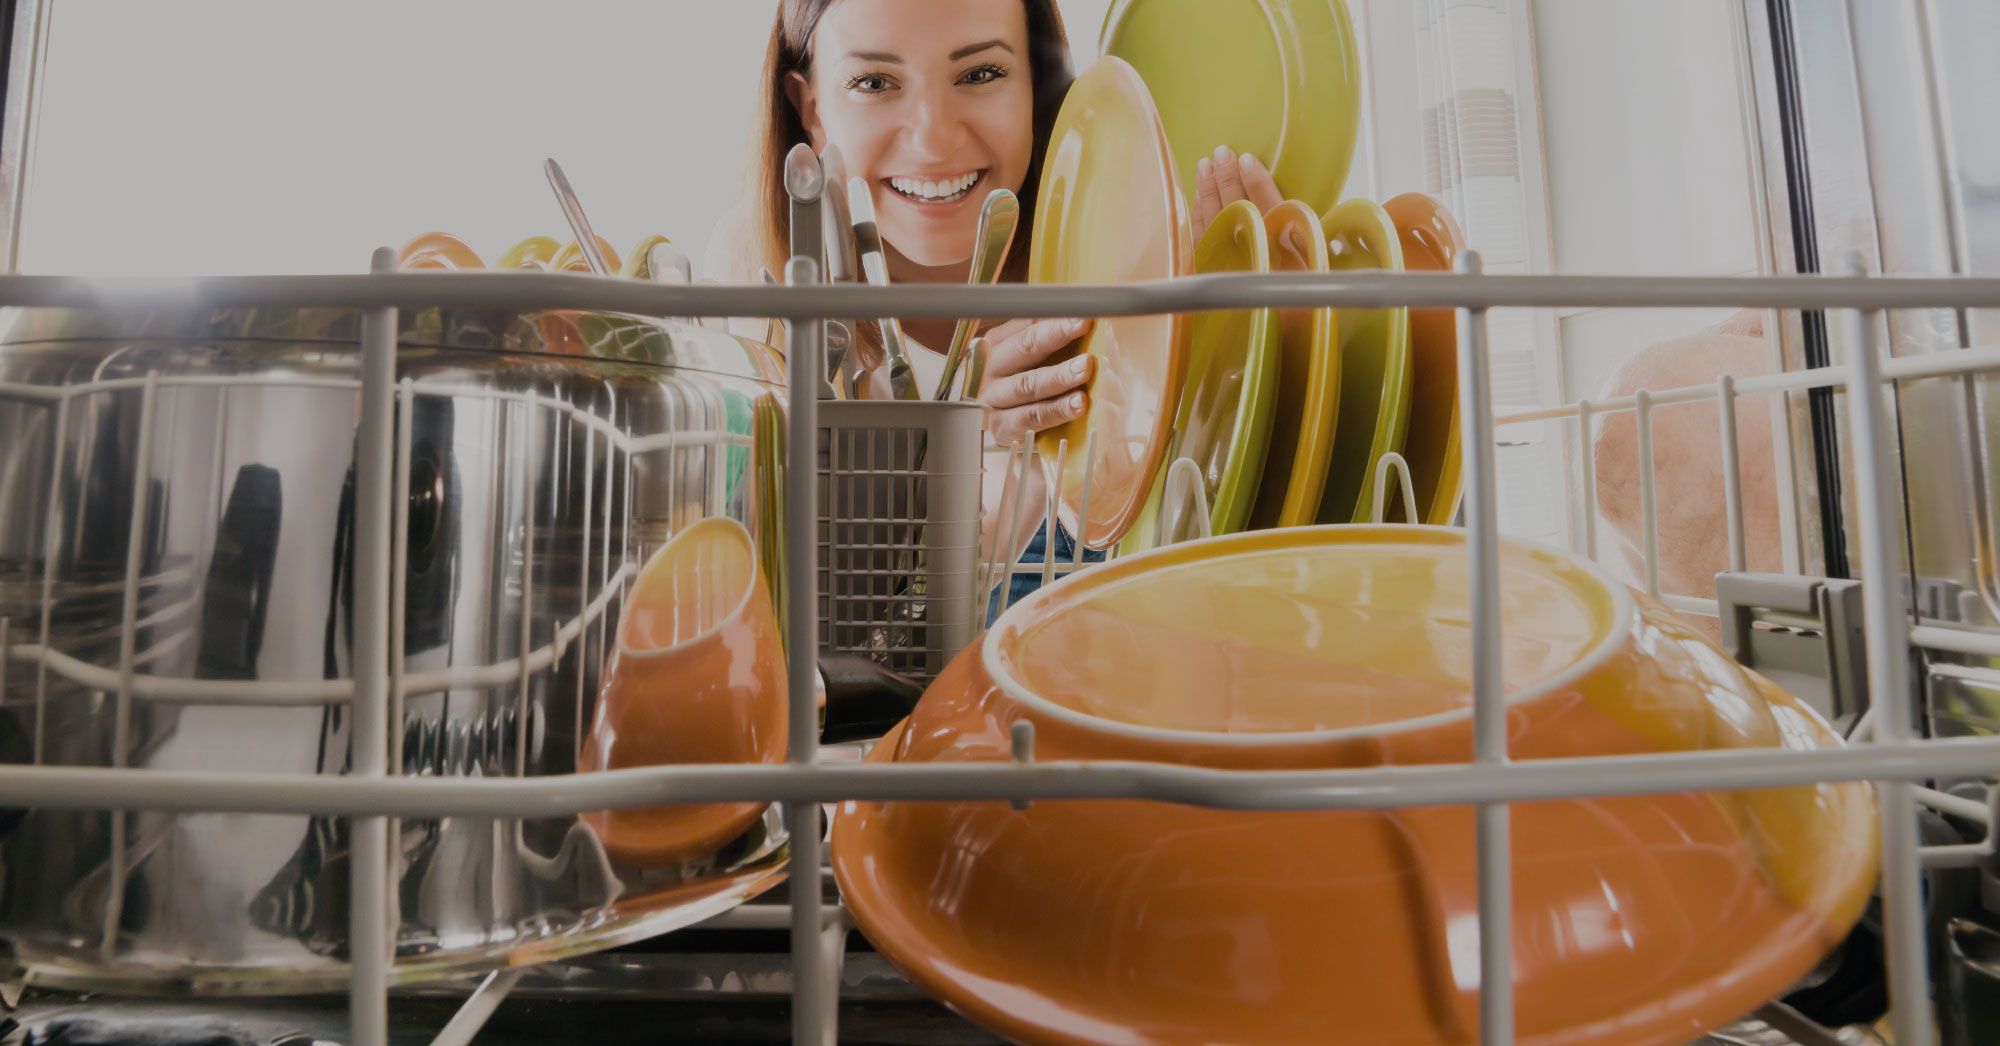 The art of filling the dishwasher properly